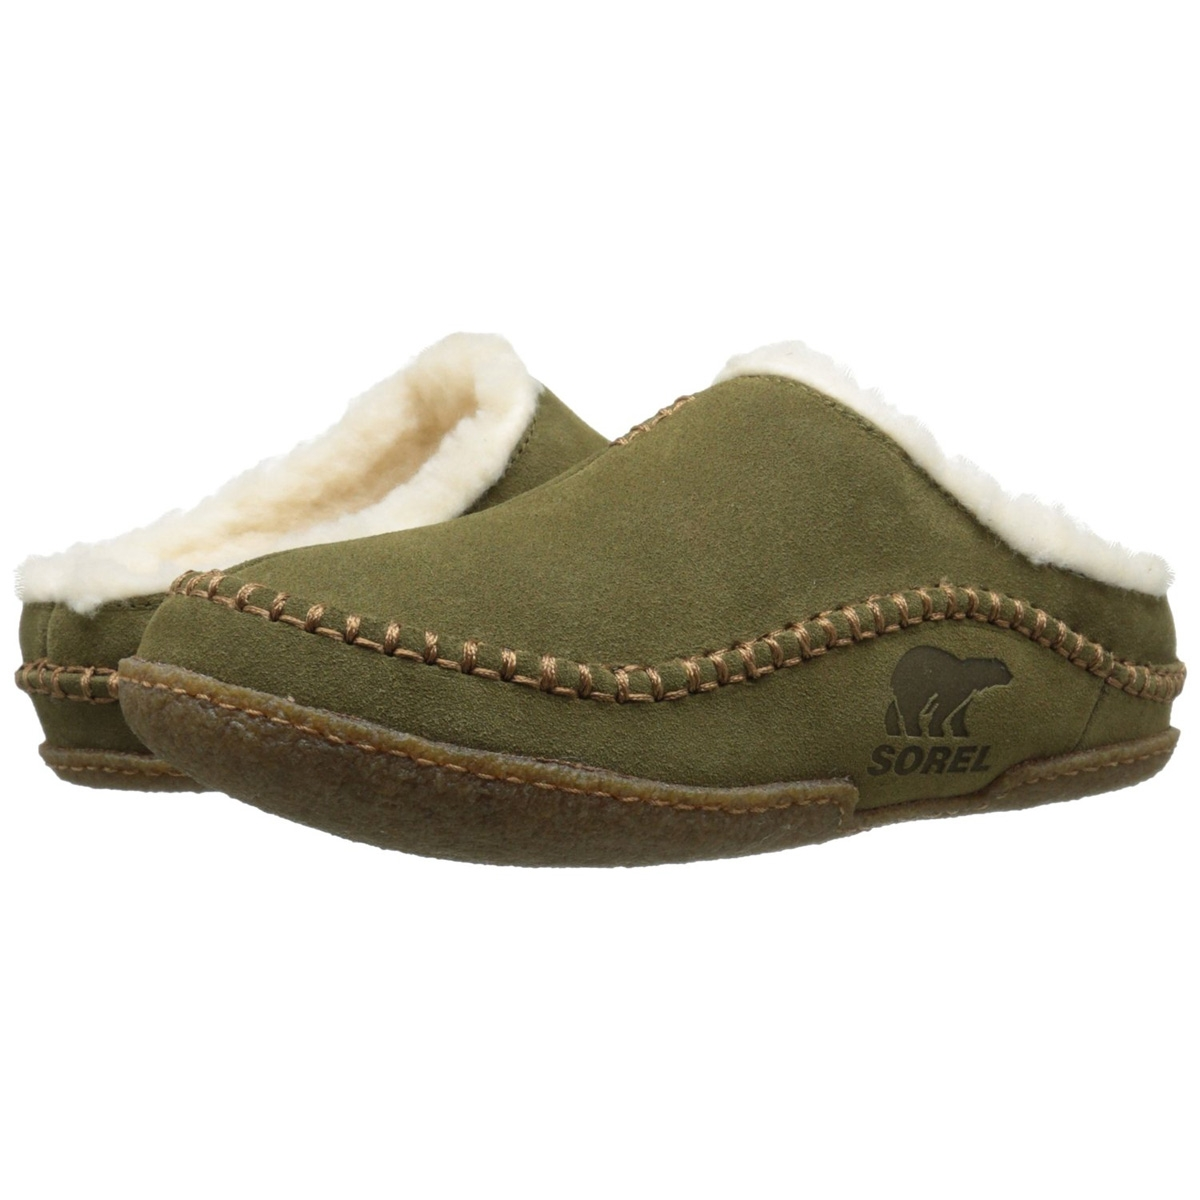 69d79c42cdfe Image of Sorel Falcon Ridge Slippers (Men s) - Olive Brown   Stout